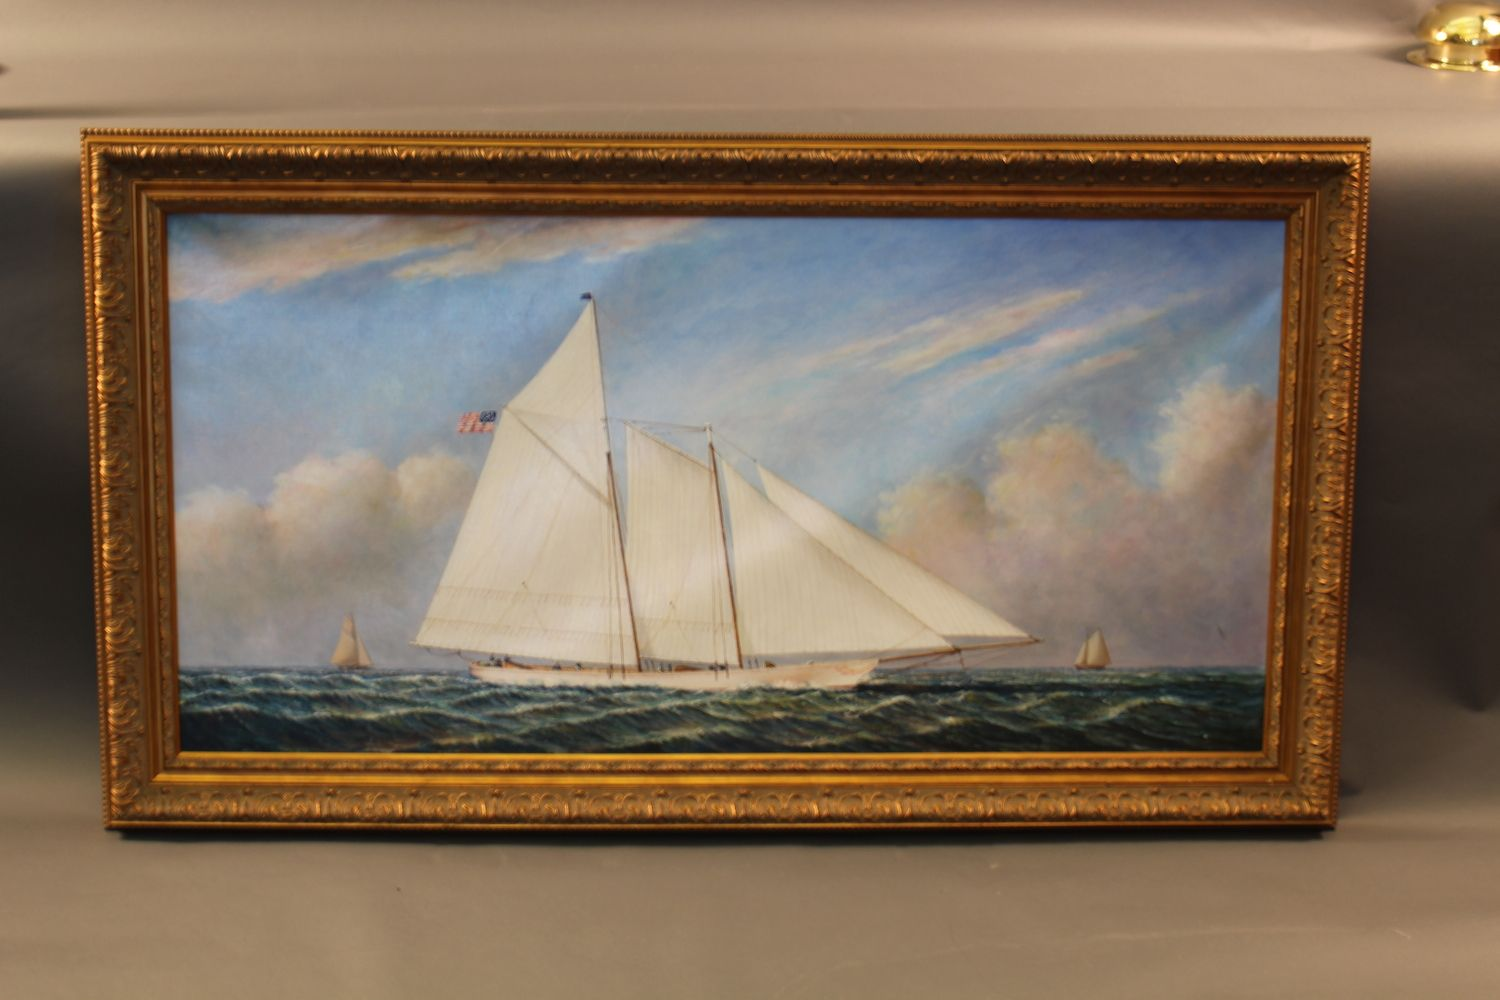 Lot 163 - Oil on canvas painting of the famous schooner yacht ...